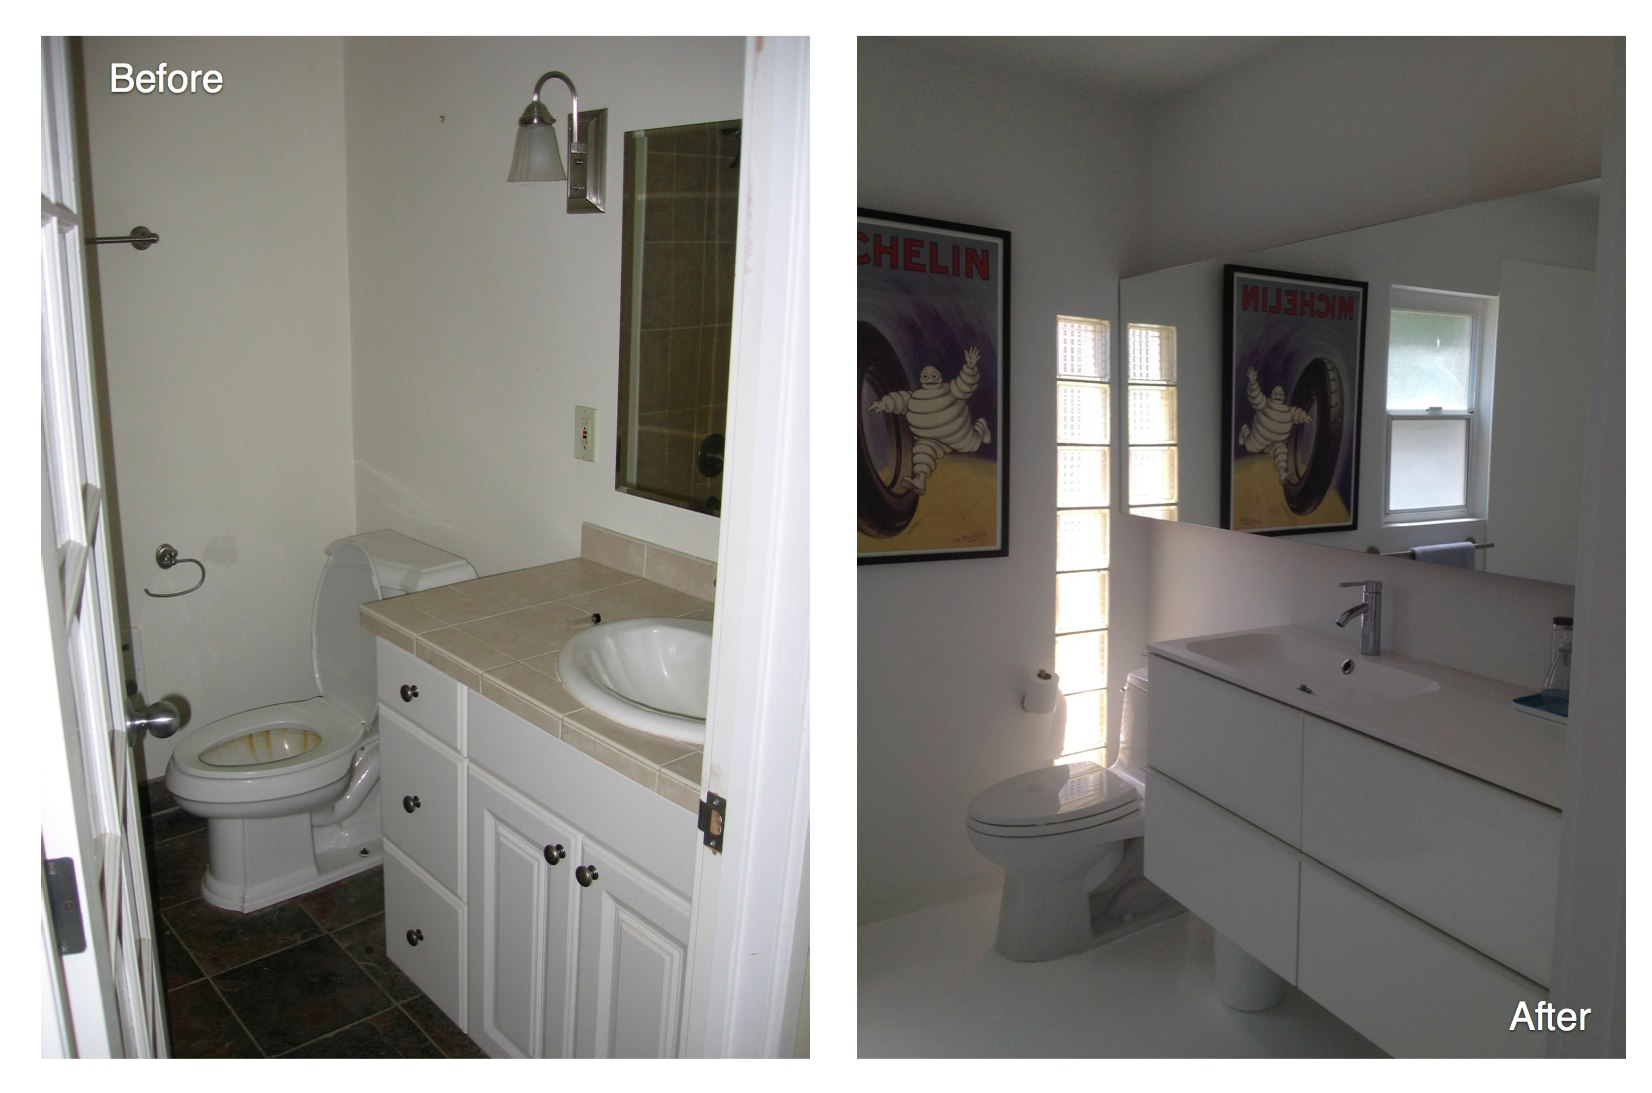 Ikea Bathroom Before After how to spend less than $75,000 and completely change your home